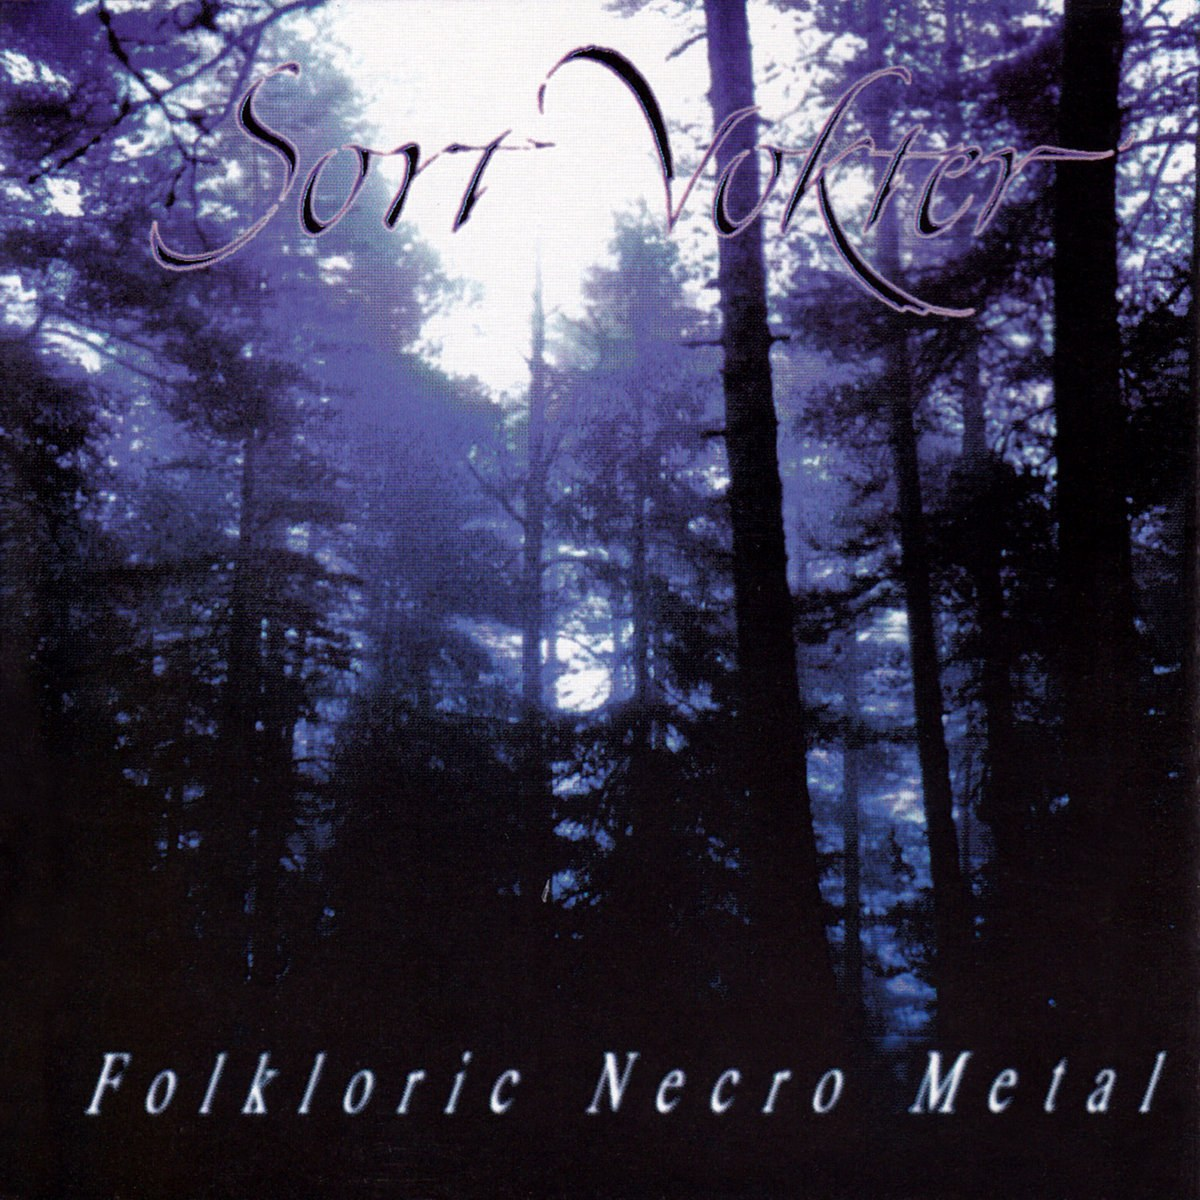 Review for Sort Vokter - Folkloric Necro Metal